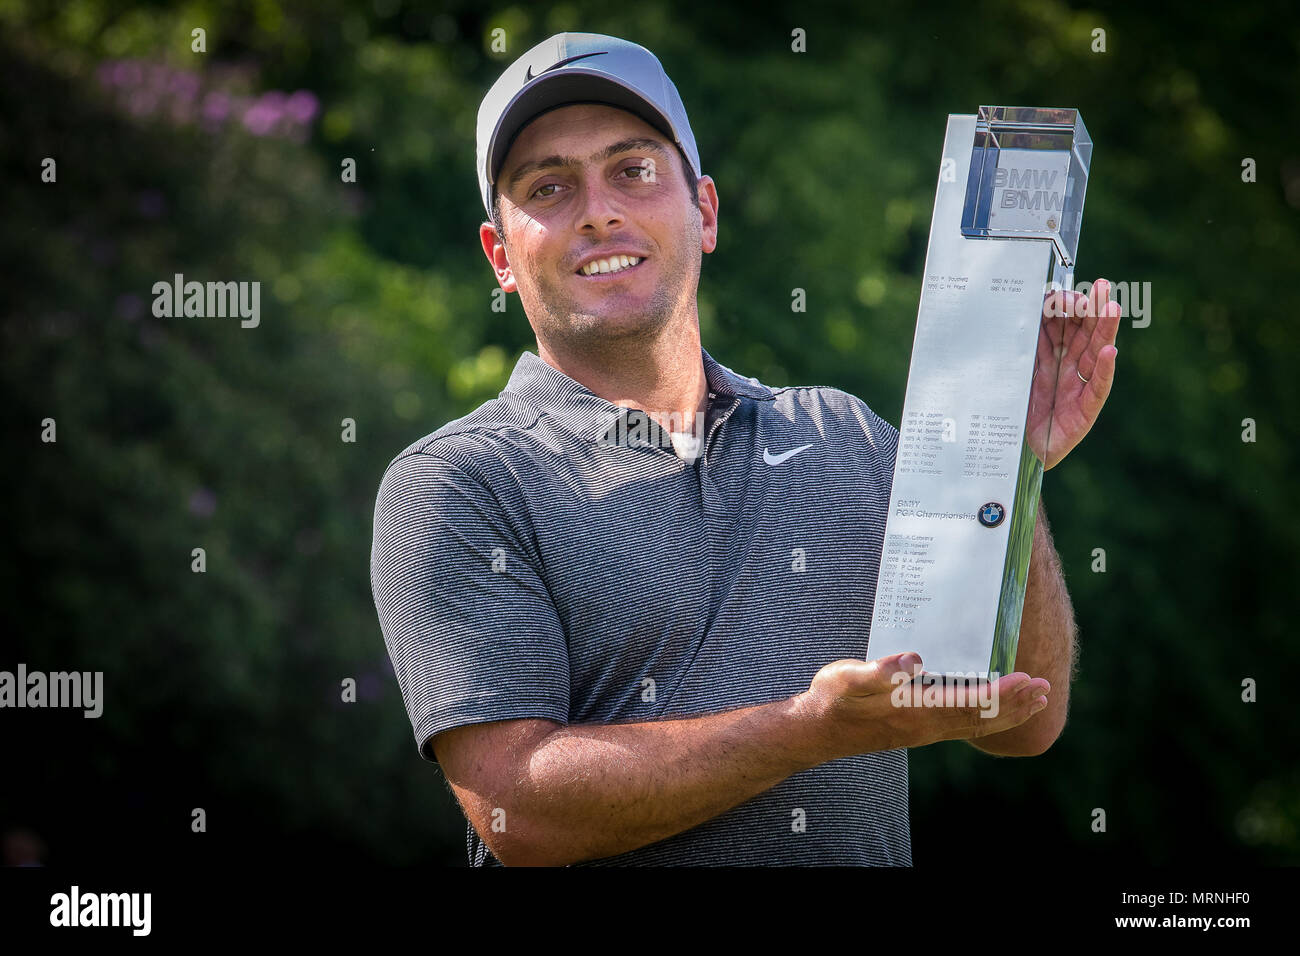 Surrey, UK. 27th May, 2018. To the Victor the spoils Francesco Molinari holds aloft the BMW PGA Championship Trophy after beating Rory Mcilroy into second place at Wentworth this afternoon. This is his 5th European Tour Victory and the first time he has won this event having finished second last year. Credit: David Betteridge/Alamy Live News - Stock Image